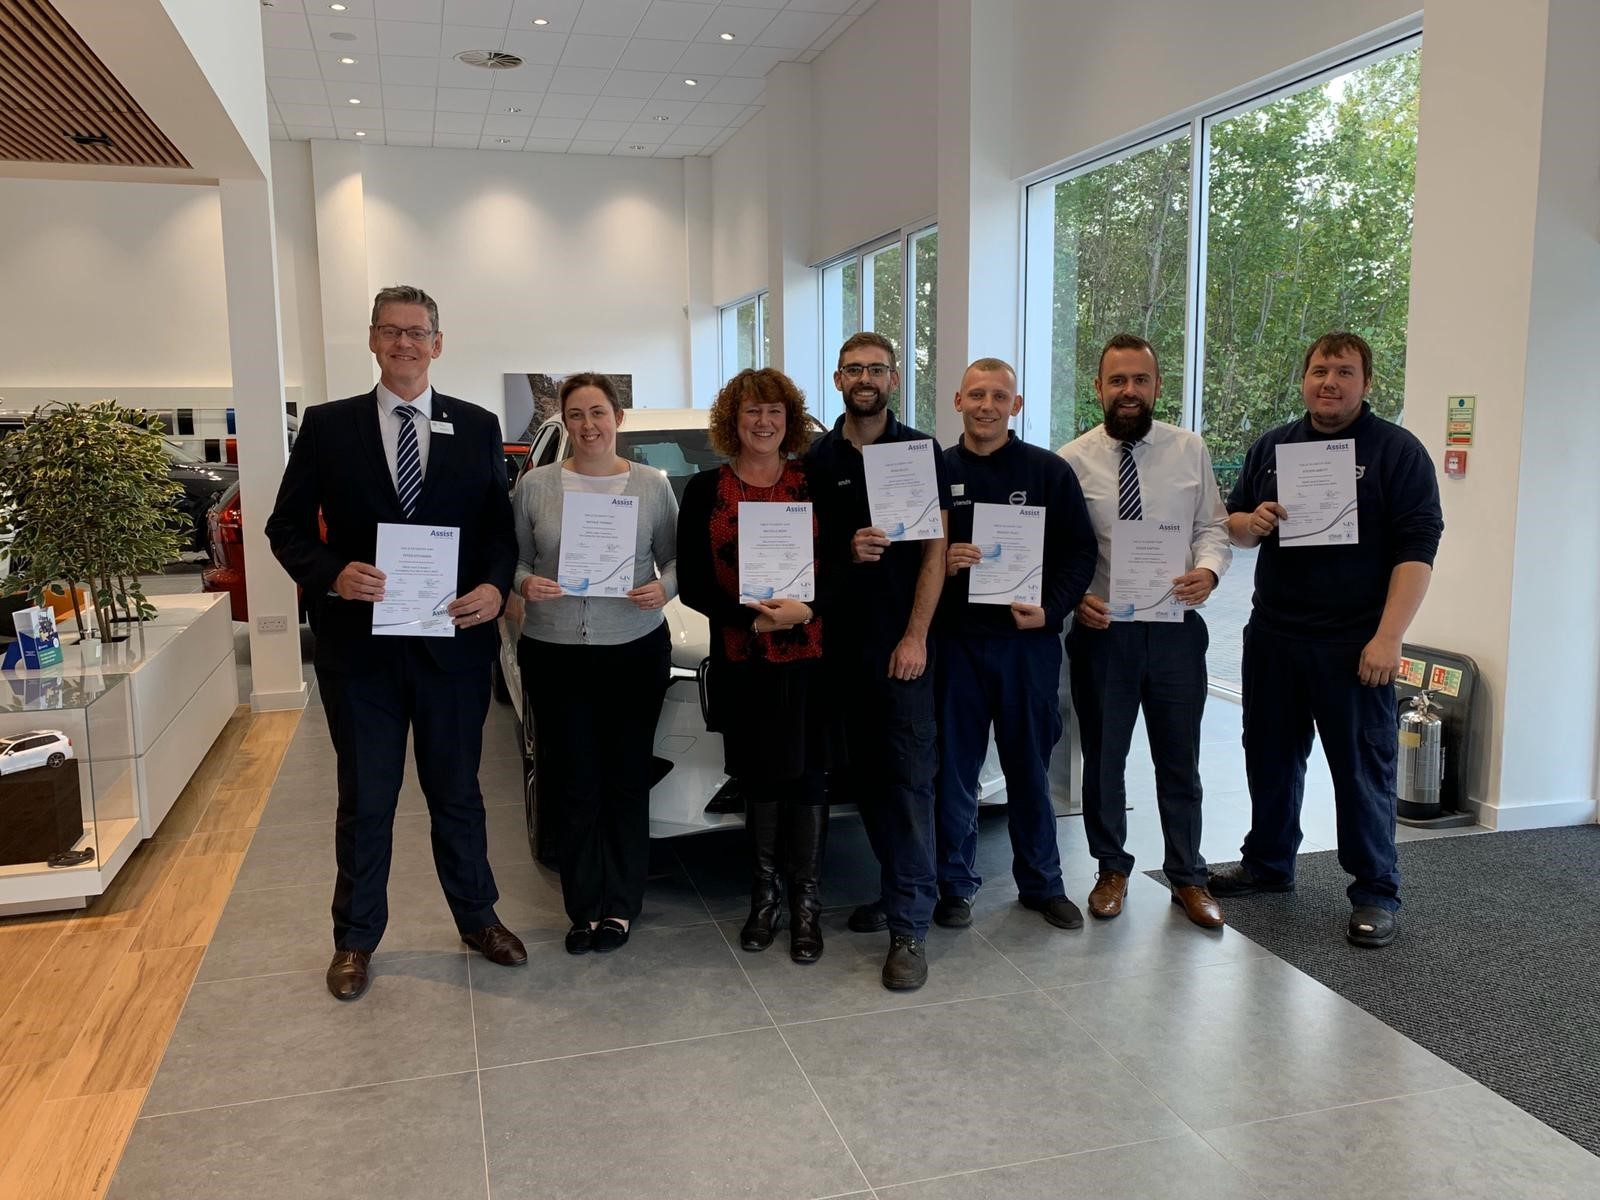 Swindon Volvo dealership installs defibrillators